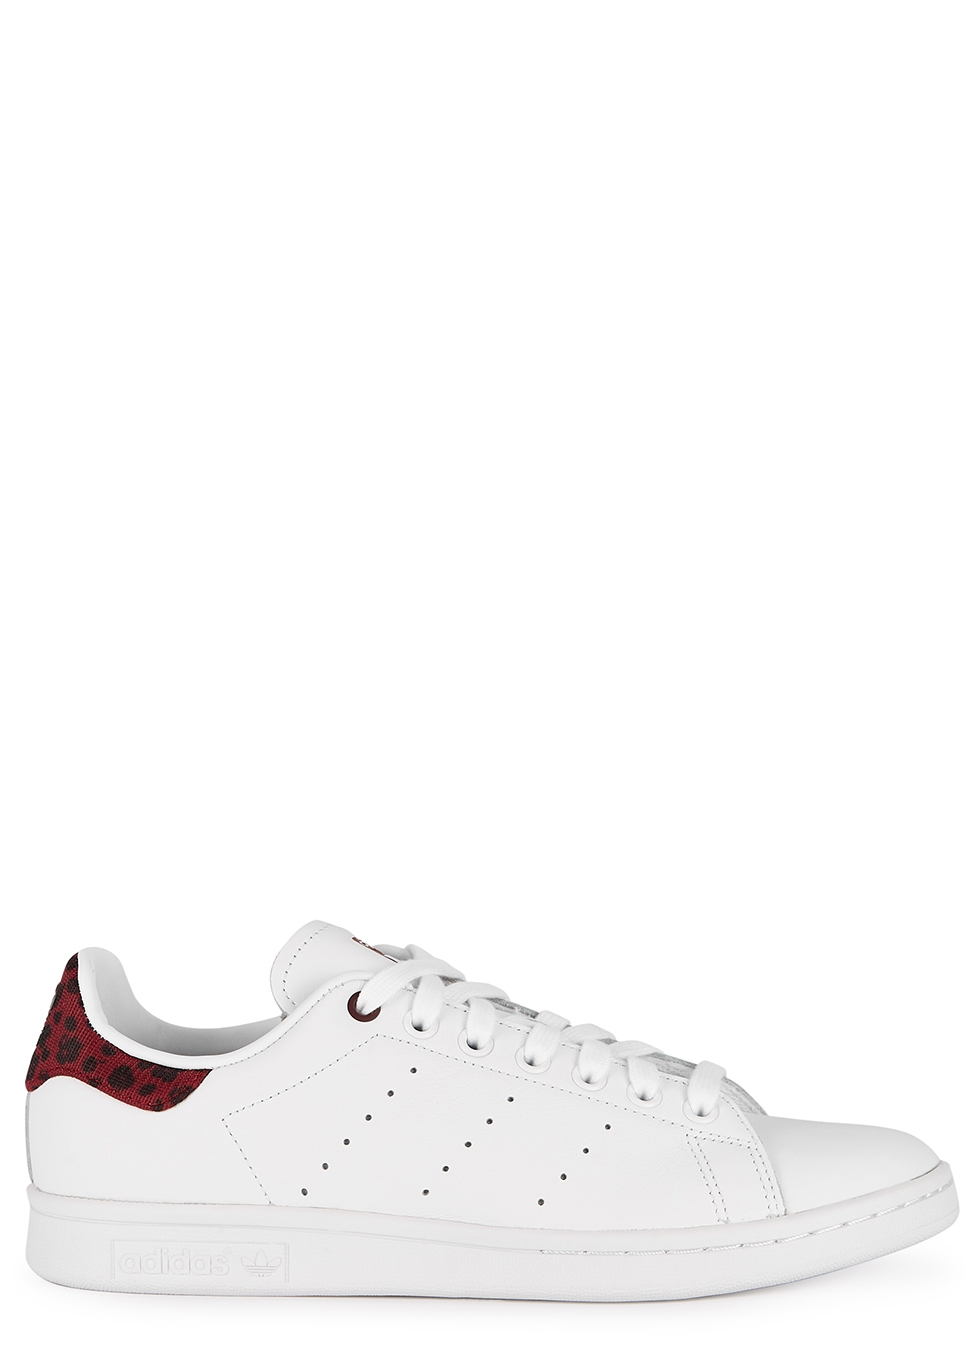 adidas Originals Stan Smith white and plum leather sneakers